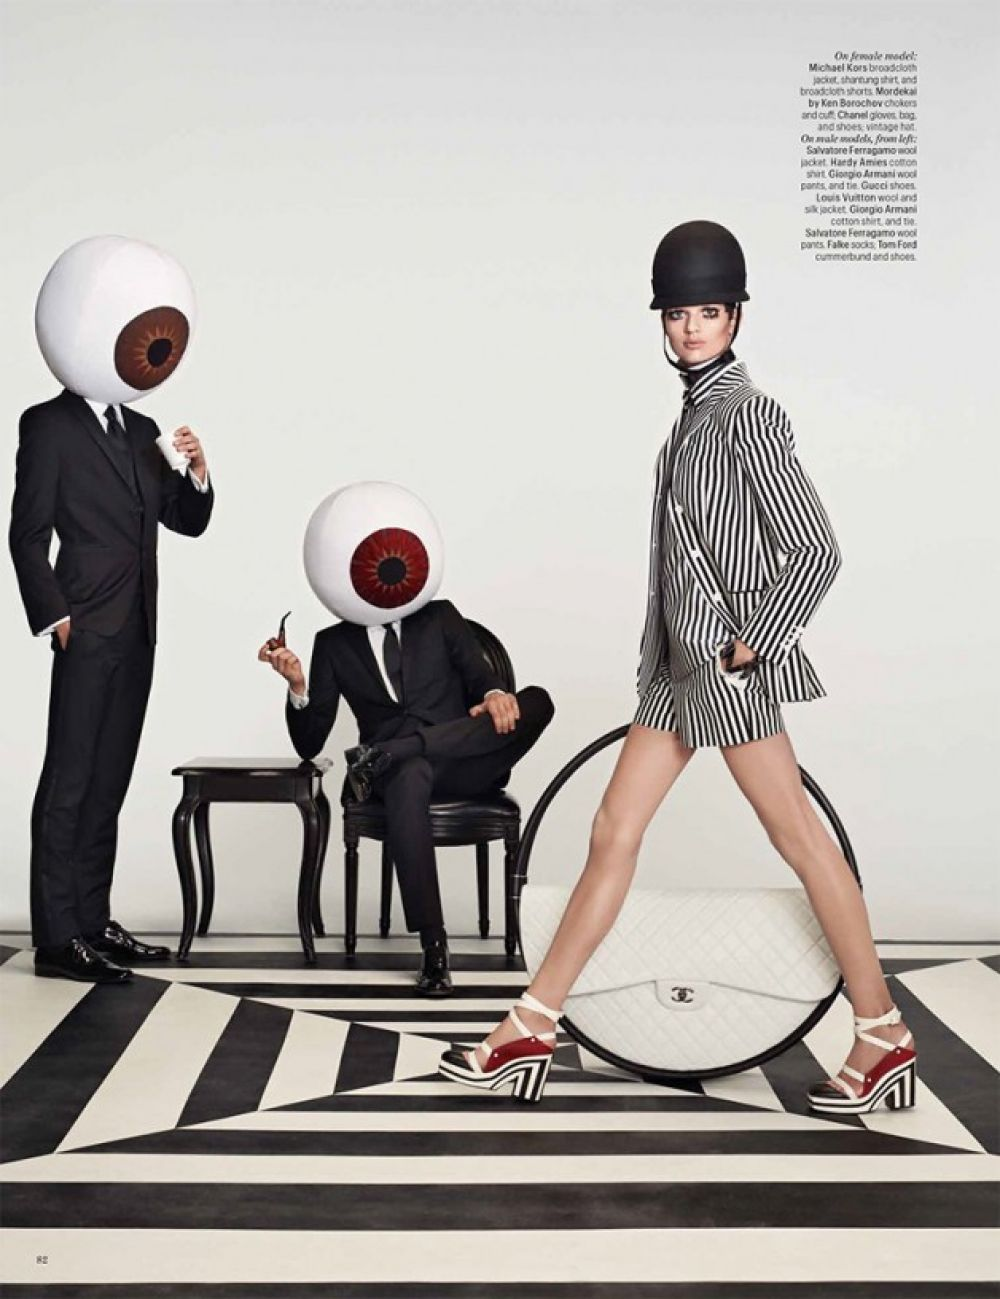 Giovanna-Battaglia-2-Optical-Allusions-W-Magazine-Roe-Ethridge.jpg